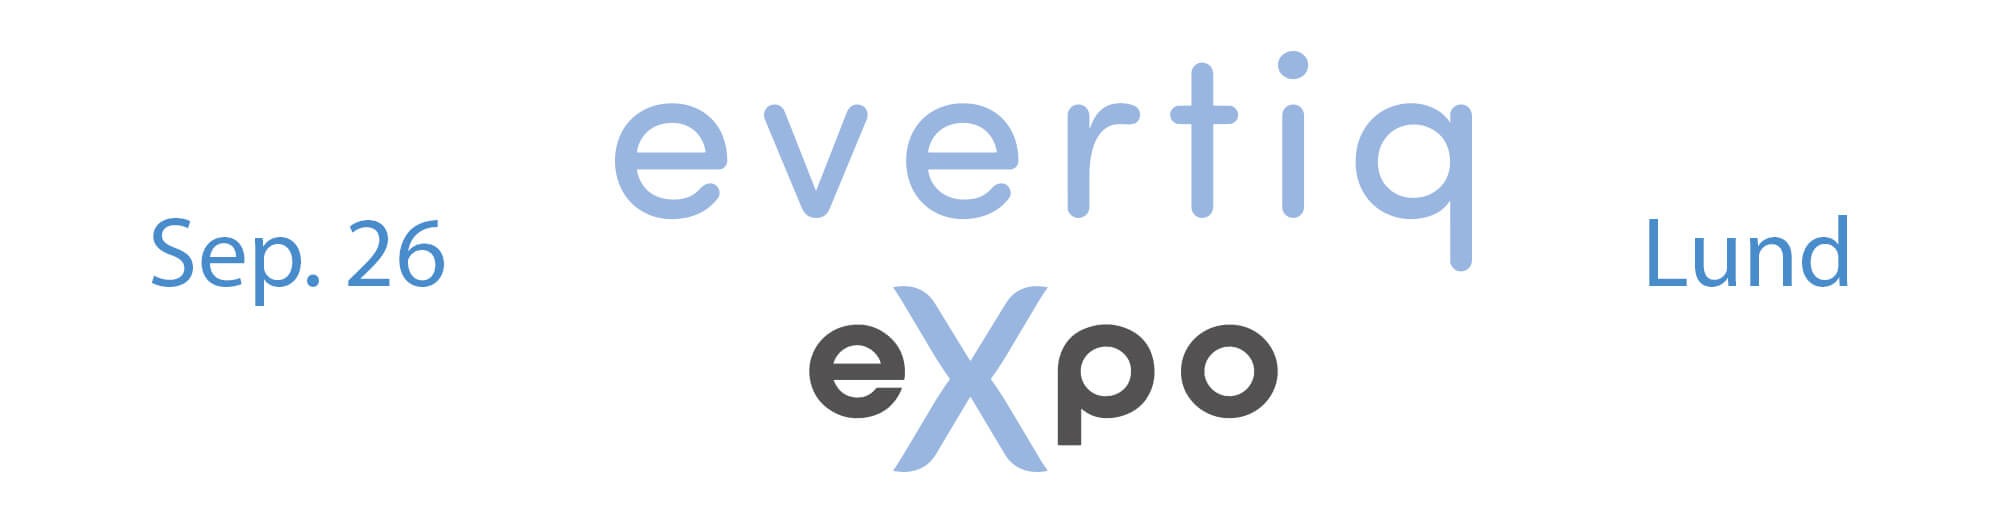 EKTOS at electronics expo Evertiq Lund. Will we see you there?